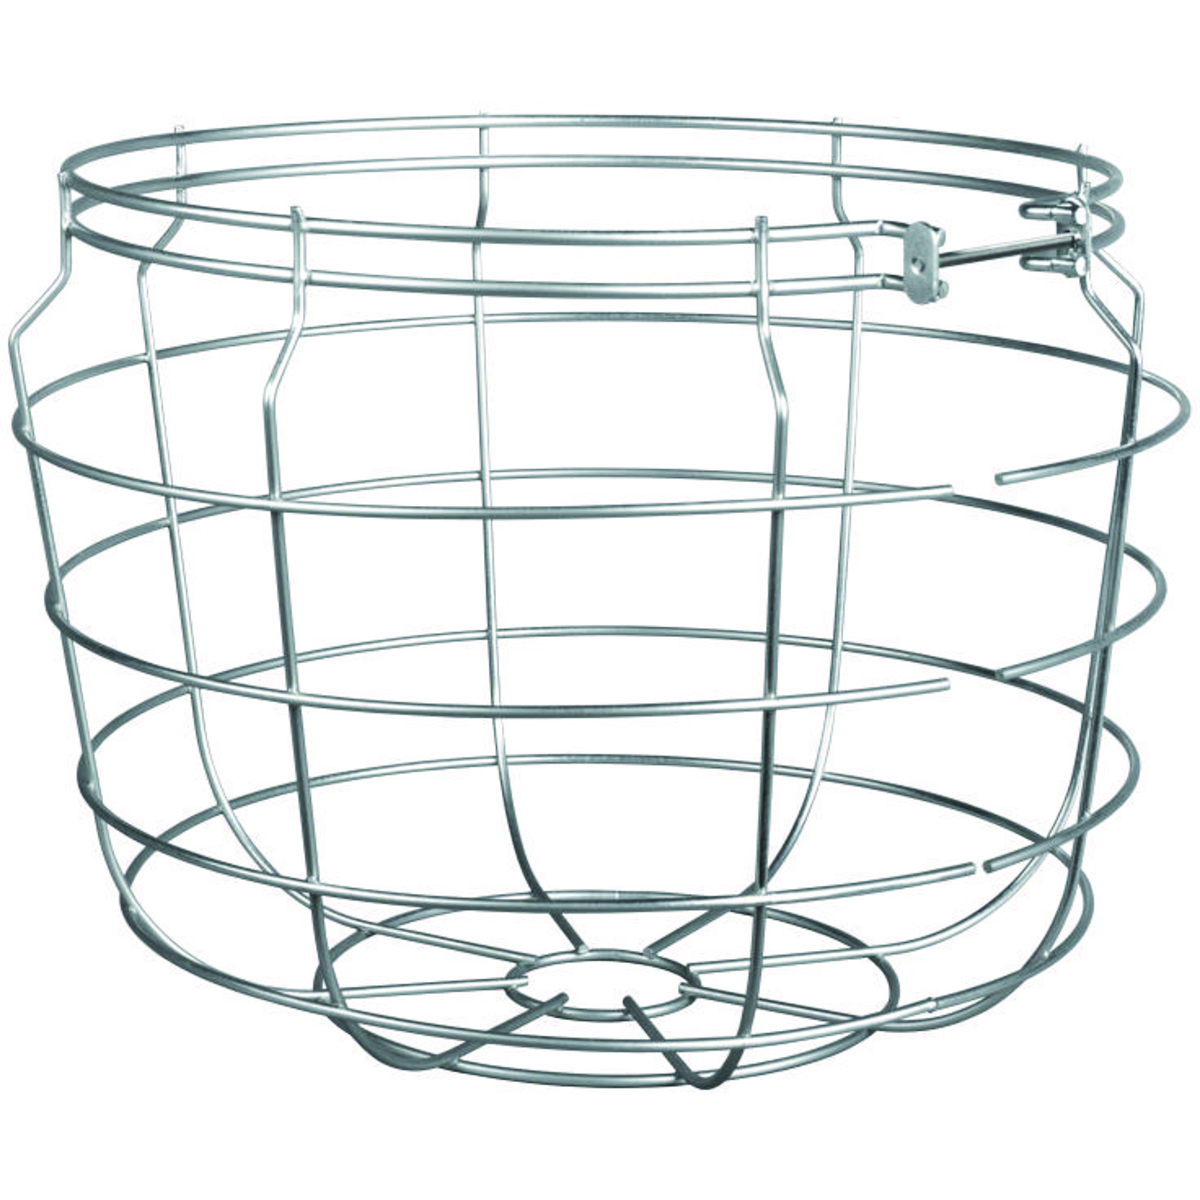 Killark Vmrwg8 Refractor Wire Guard